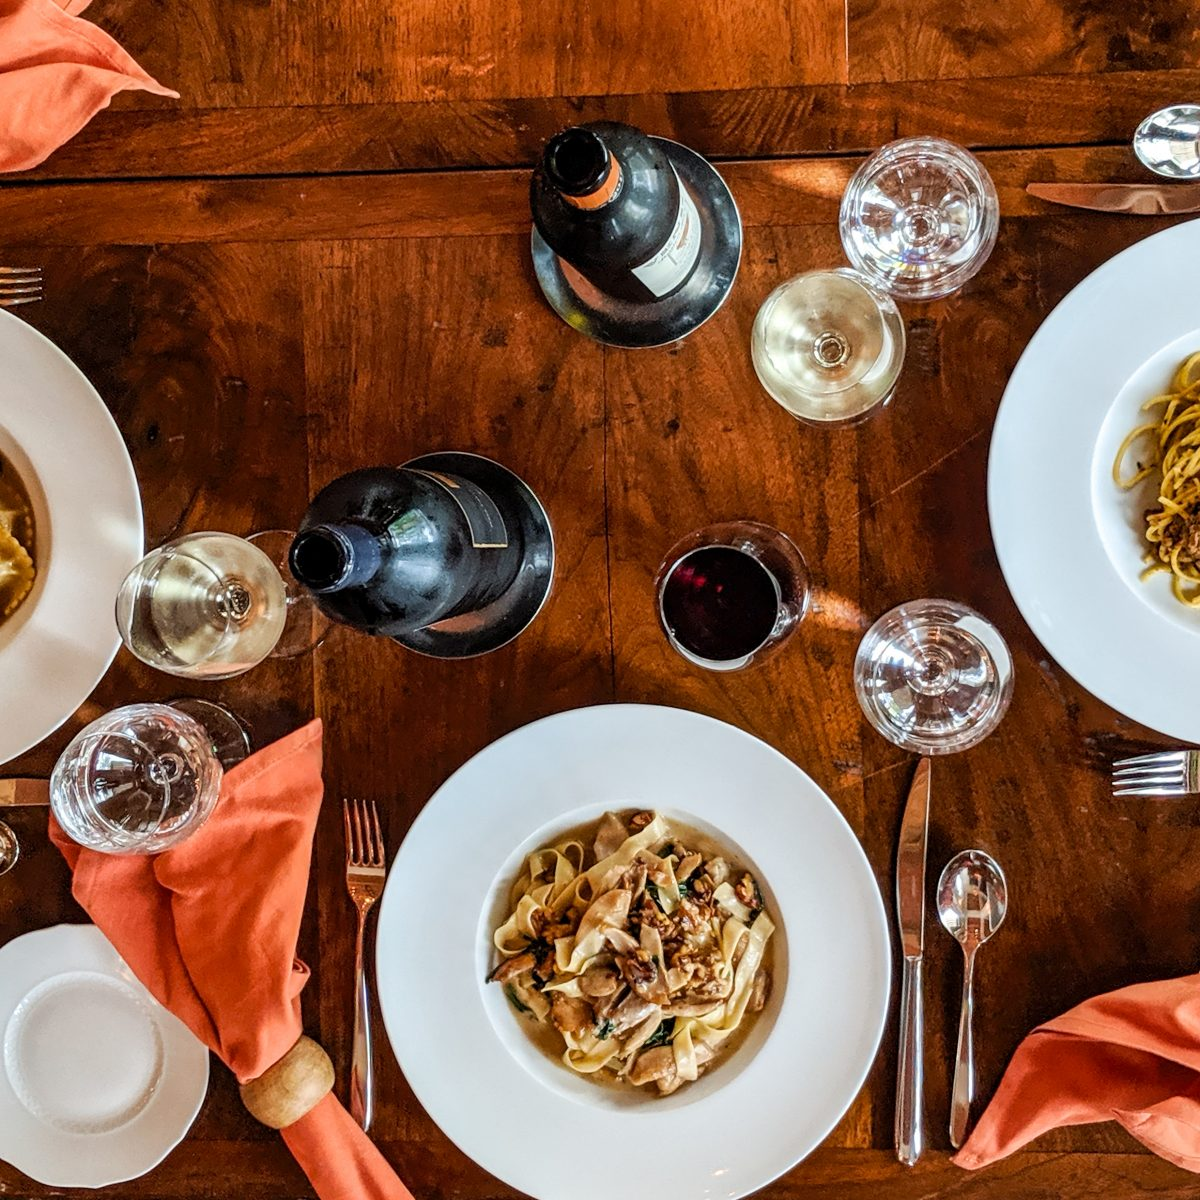 Overhead shot of several dishes of pasta and glasses of wine on a wood table